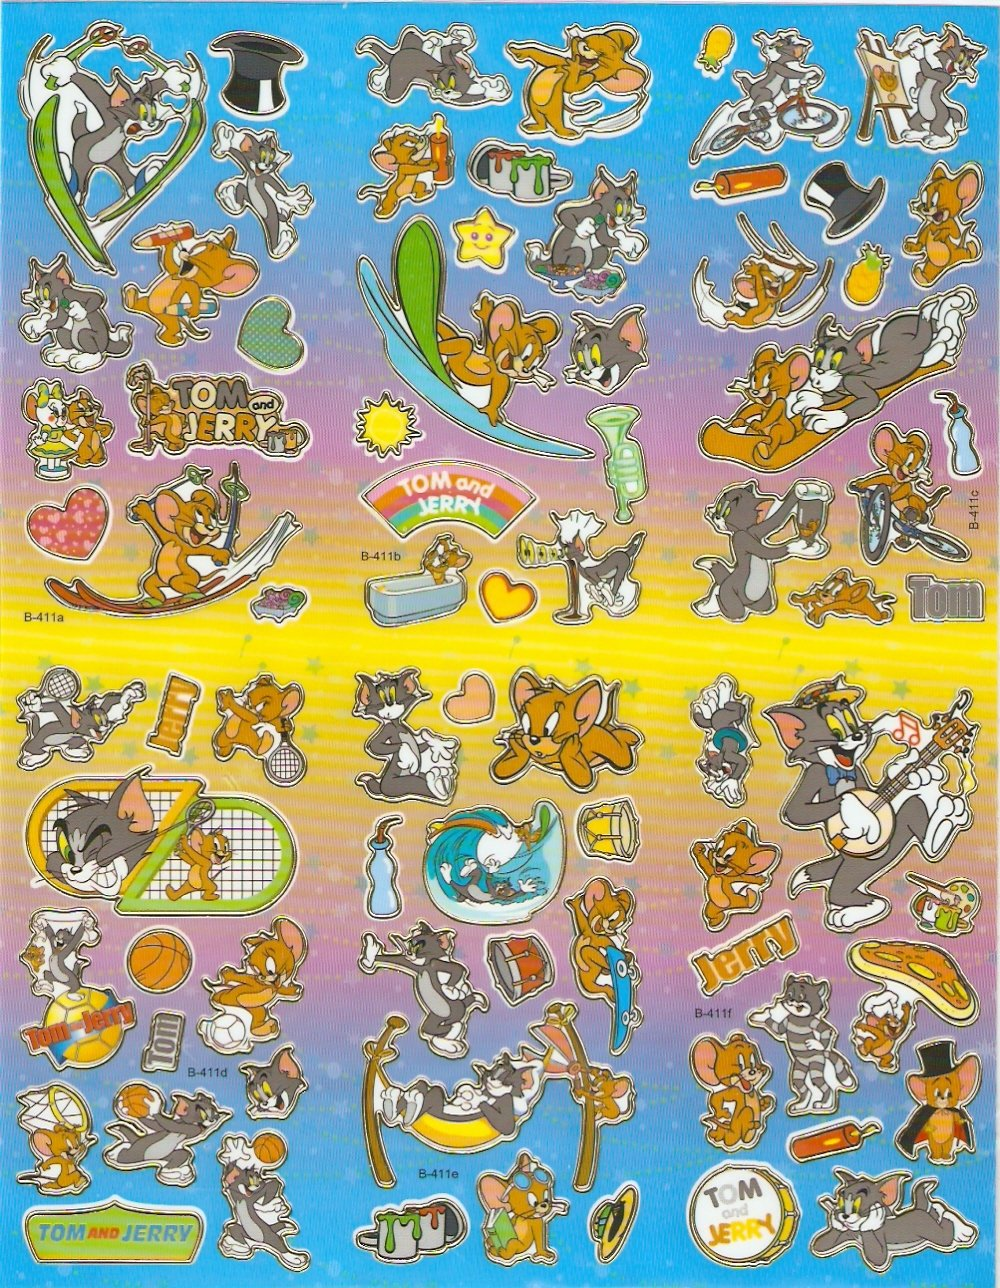 10 Big sheets Tom and Jerry Sticker Buy 2 lots Bonus 1 #B411